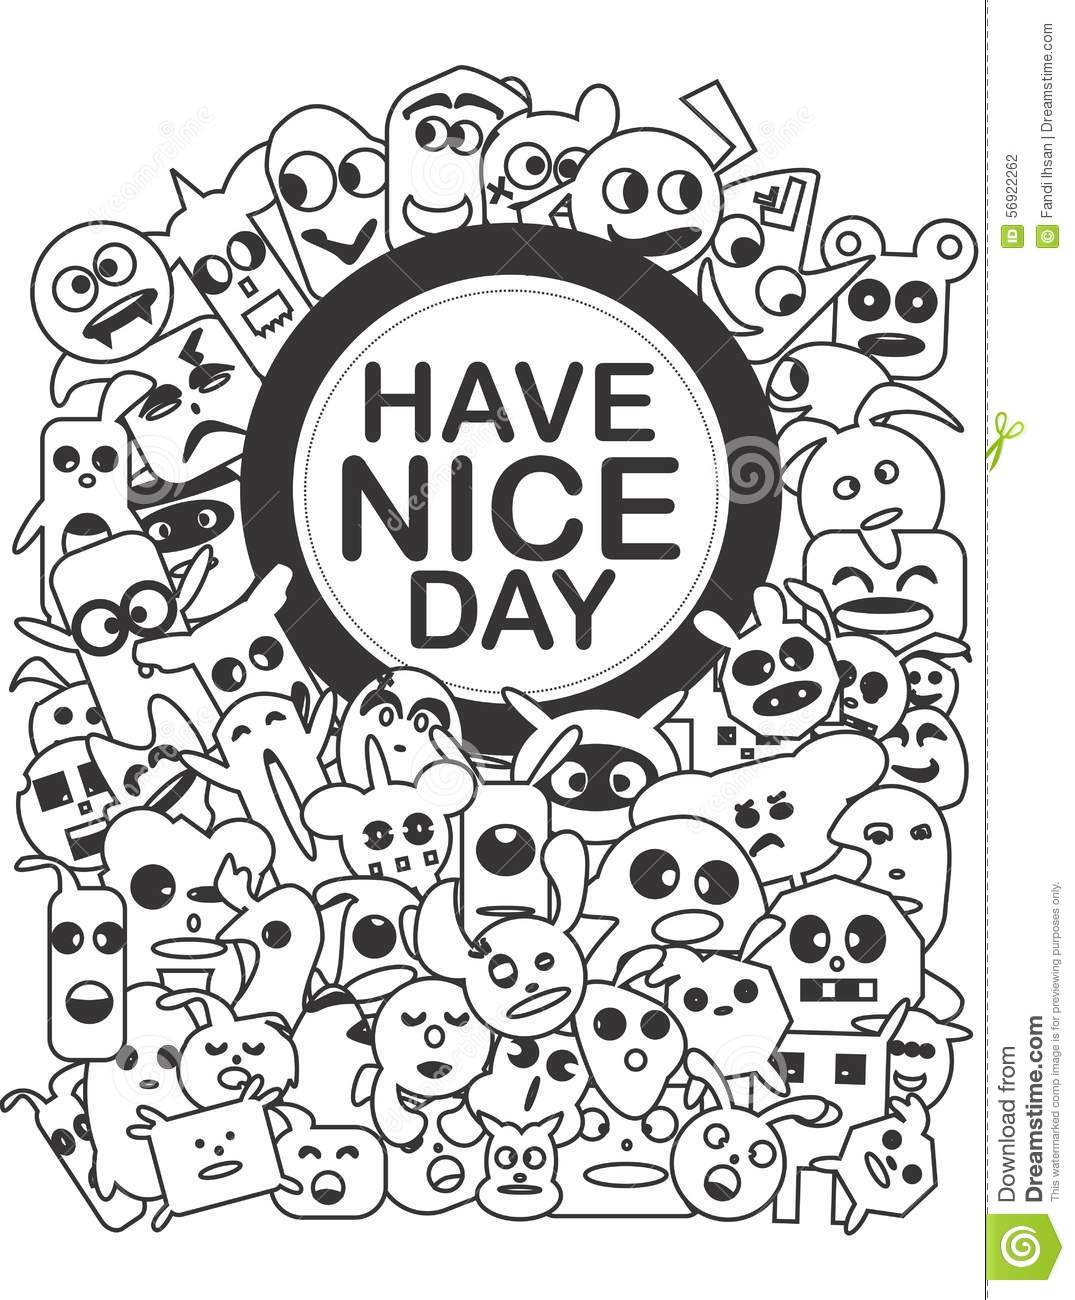 Monochrome Doodle Art Have Nice Day Stock Illustration